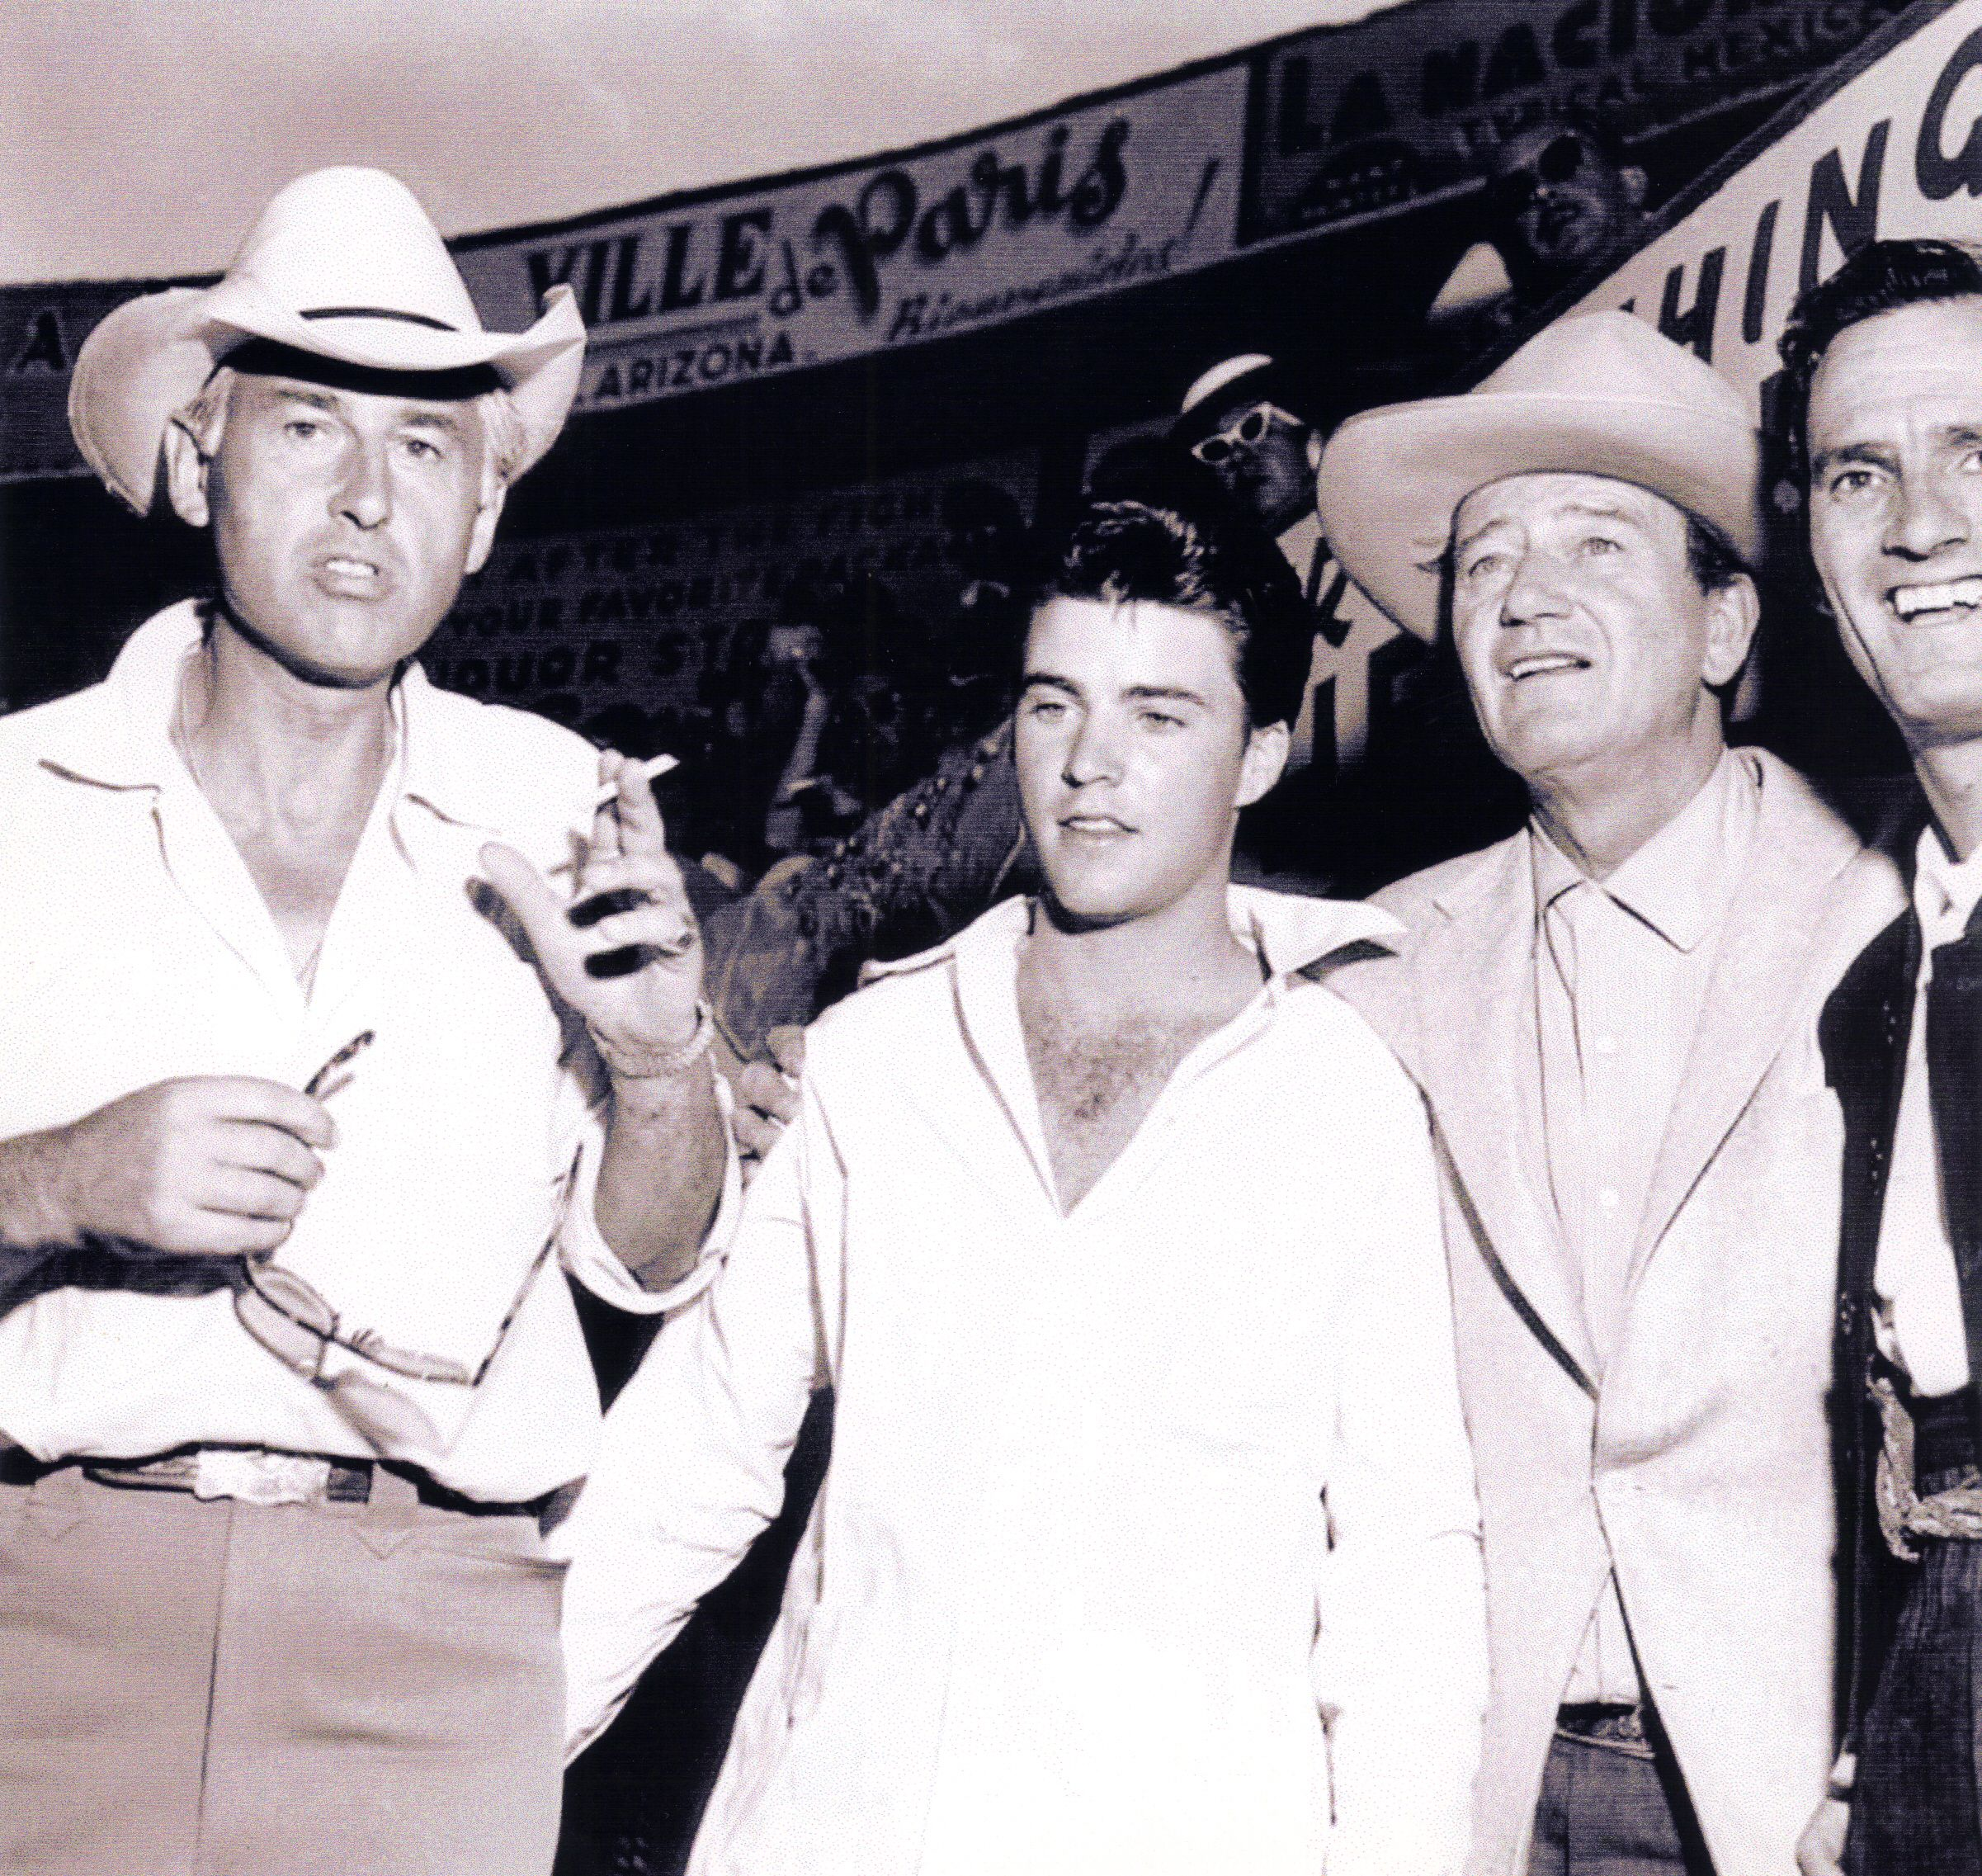 At the Bull-fights with Actor Stewart Granger and John Wayne ... 089190d885b9